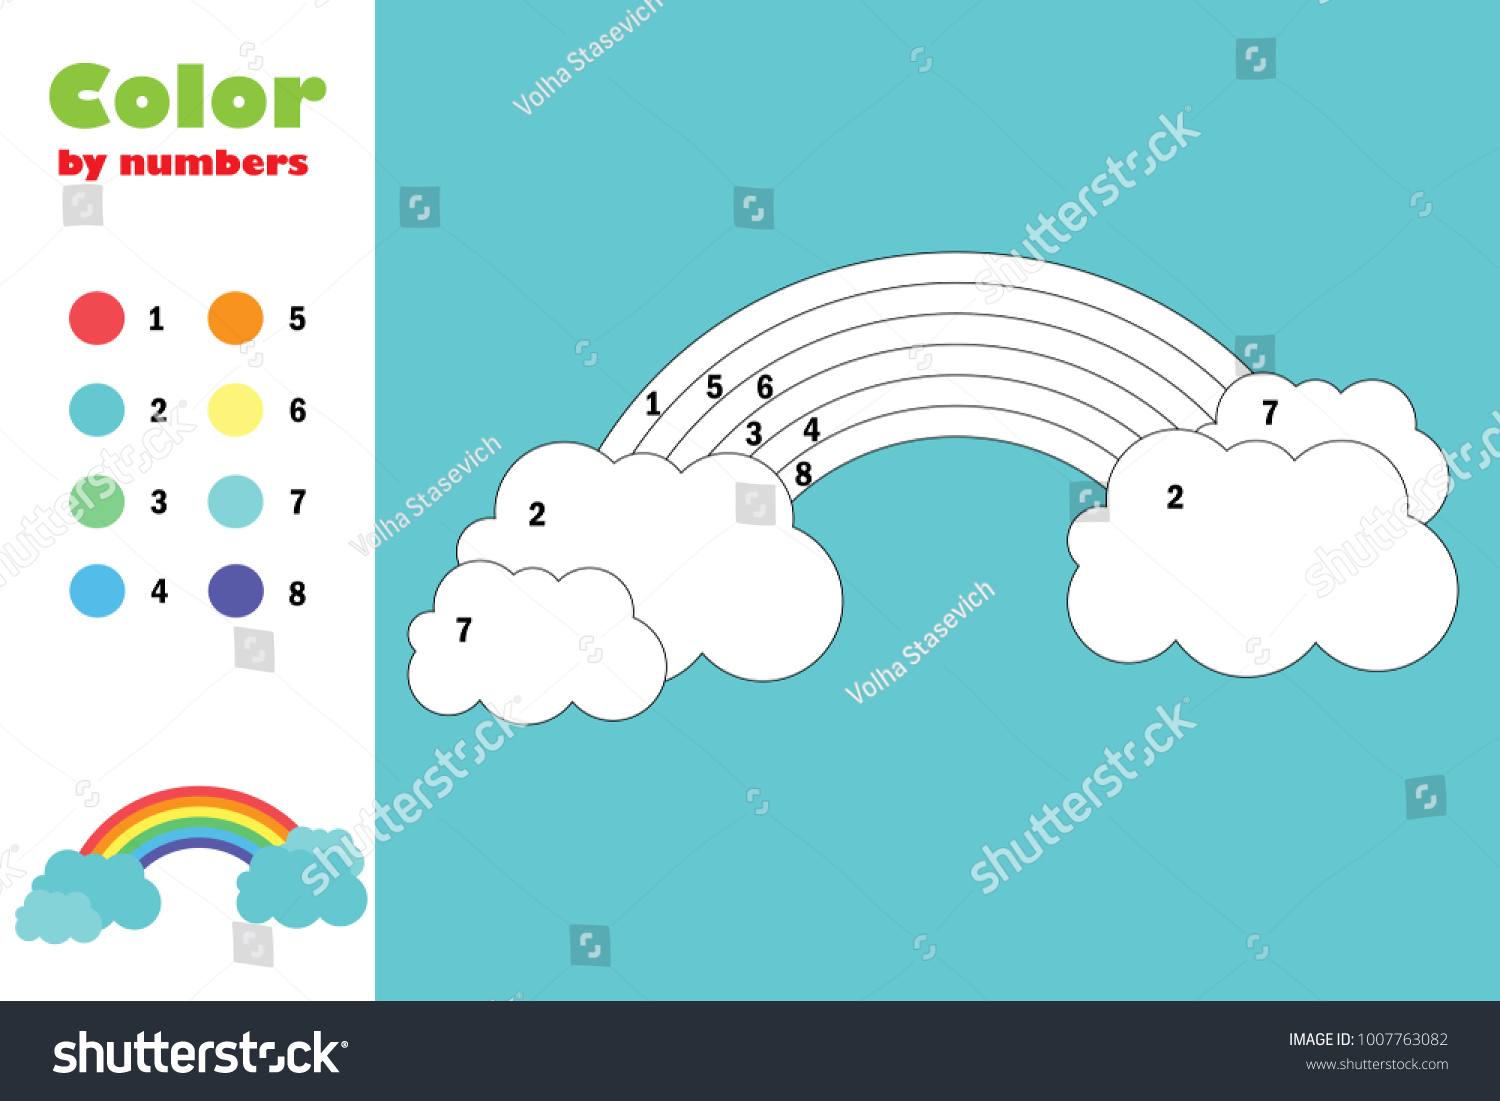 Colorful Rainbow Color By Number Education Stock Vector (Royalty ...